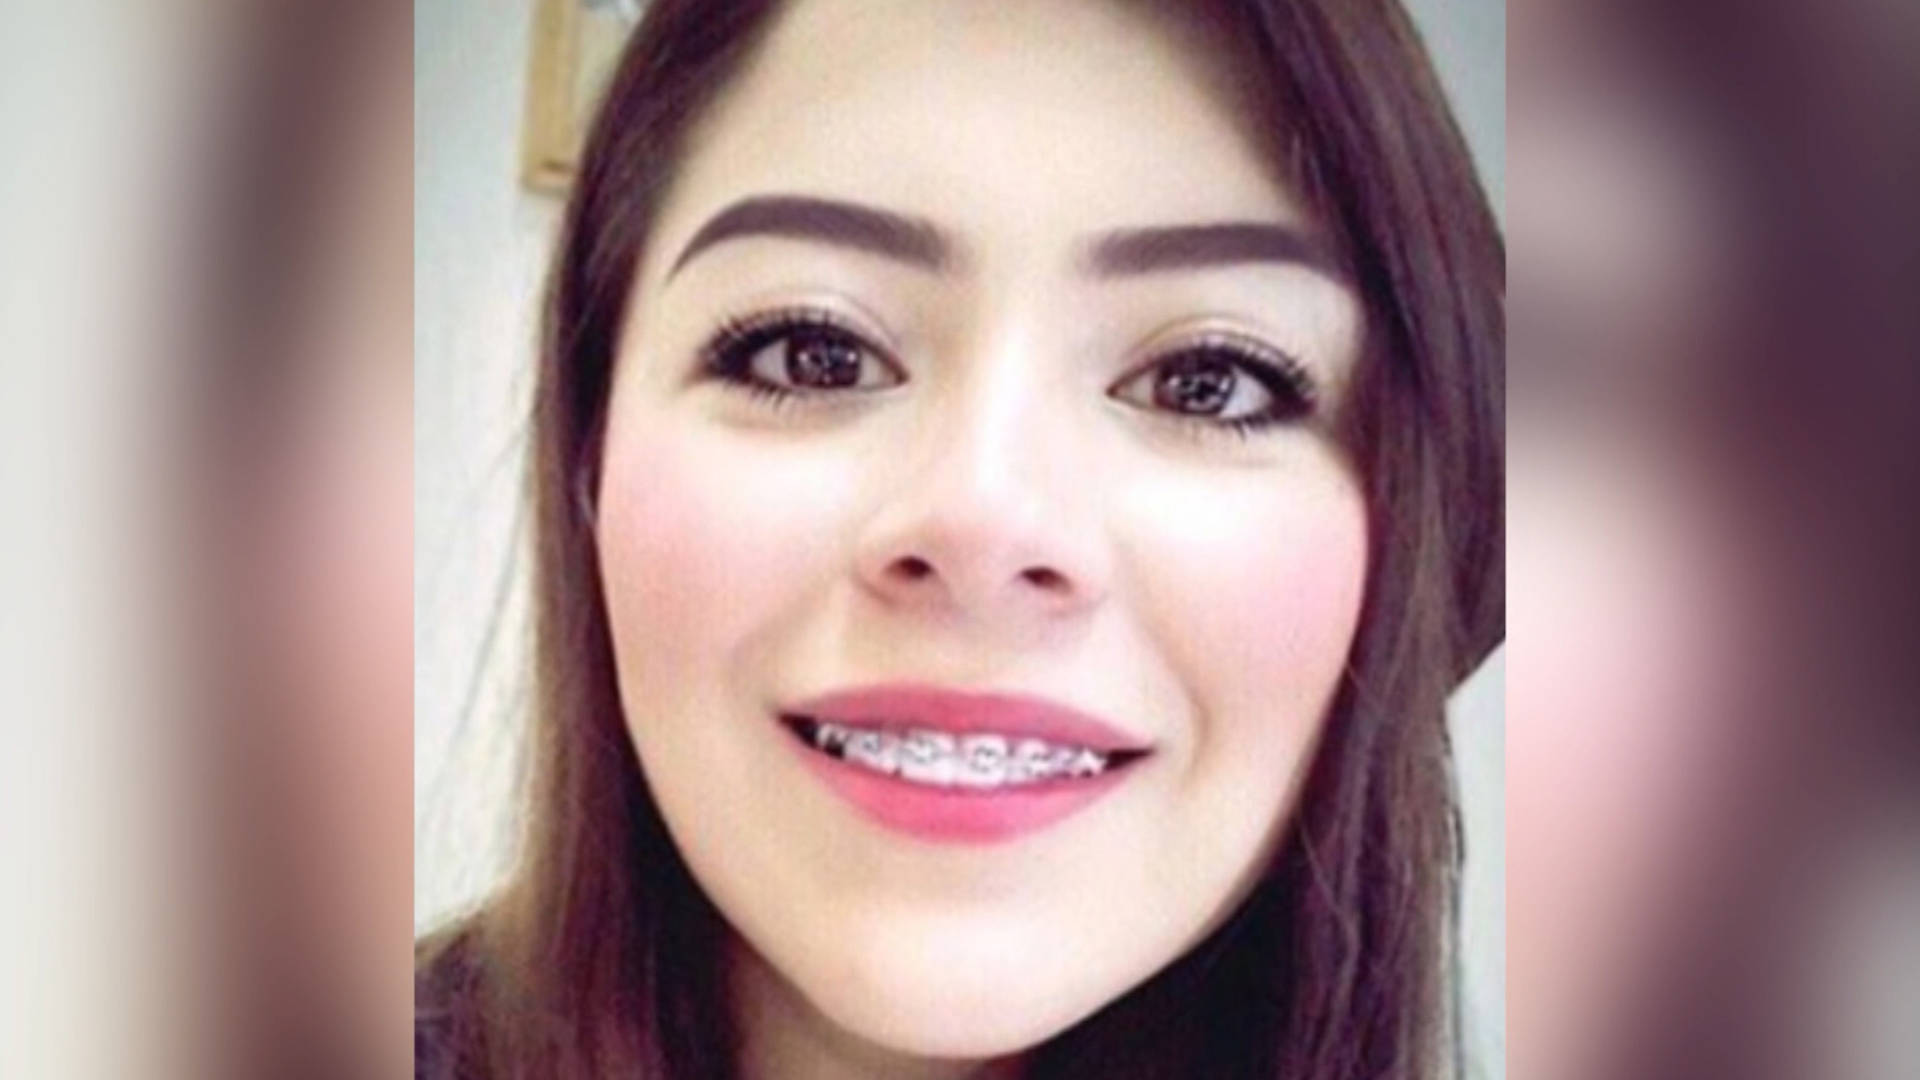 Mexico: Outrage over Murder of 25-Year-Old Ingrid Escamilla